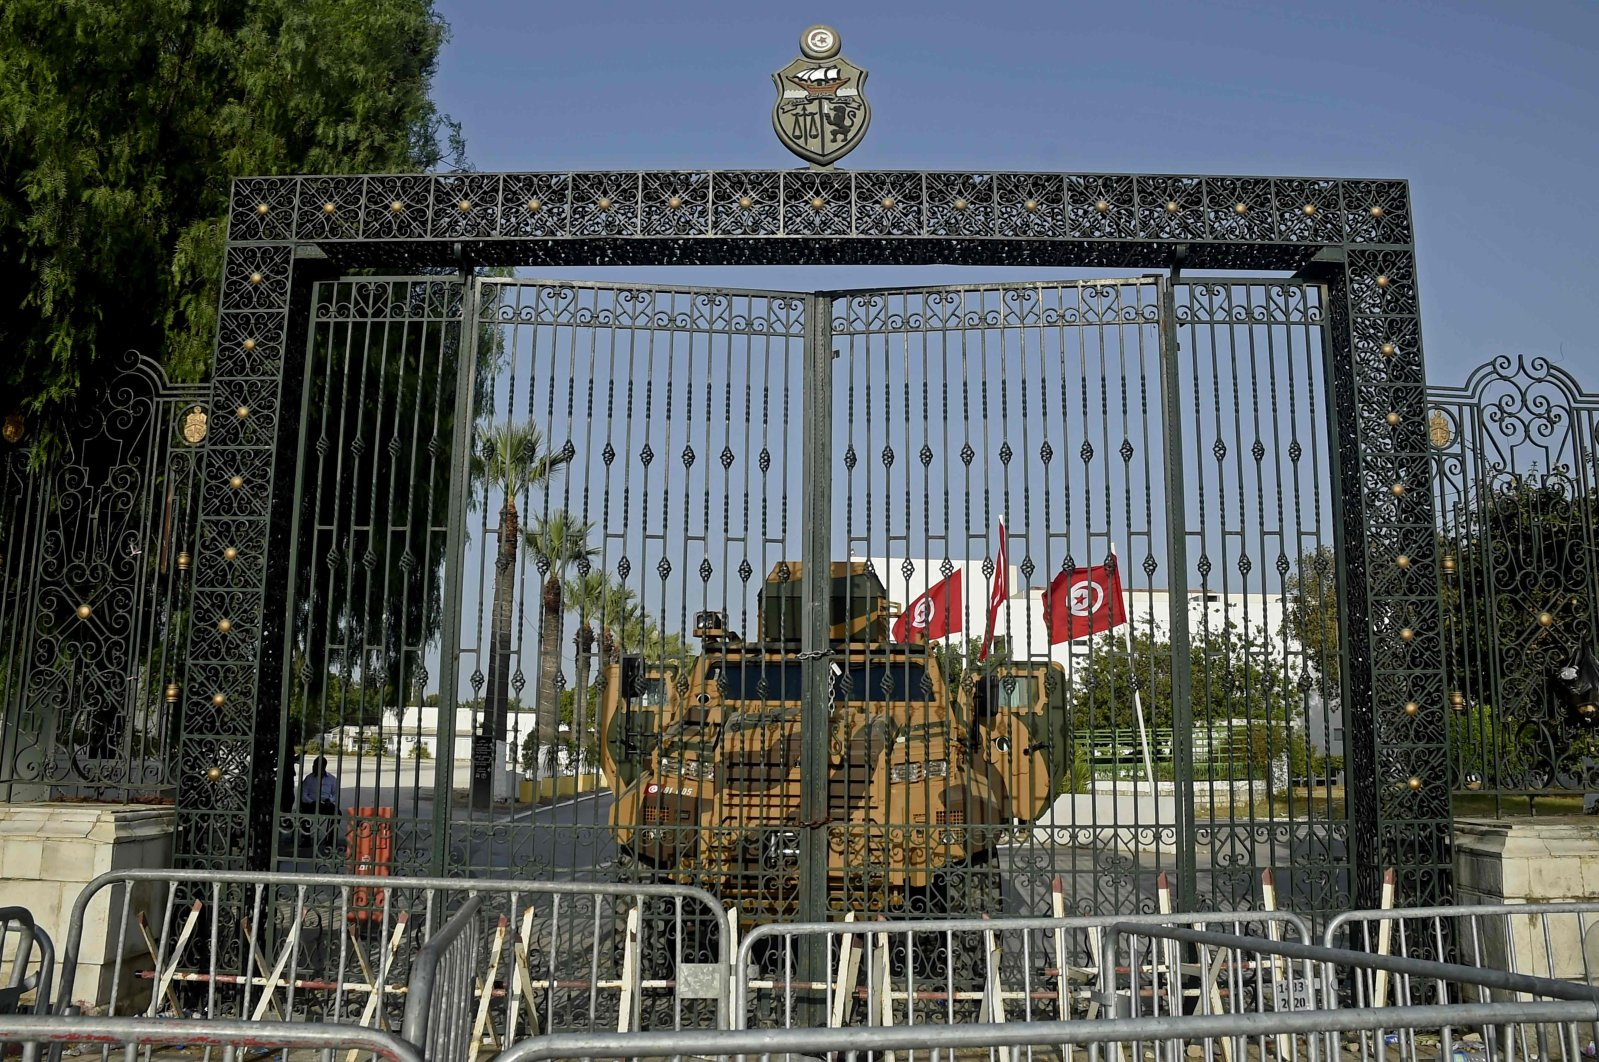 The Tunisian army barricades the parliament building in the capital Tunis, Tunisia, on July 26, 2021. (AFP Photo)